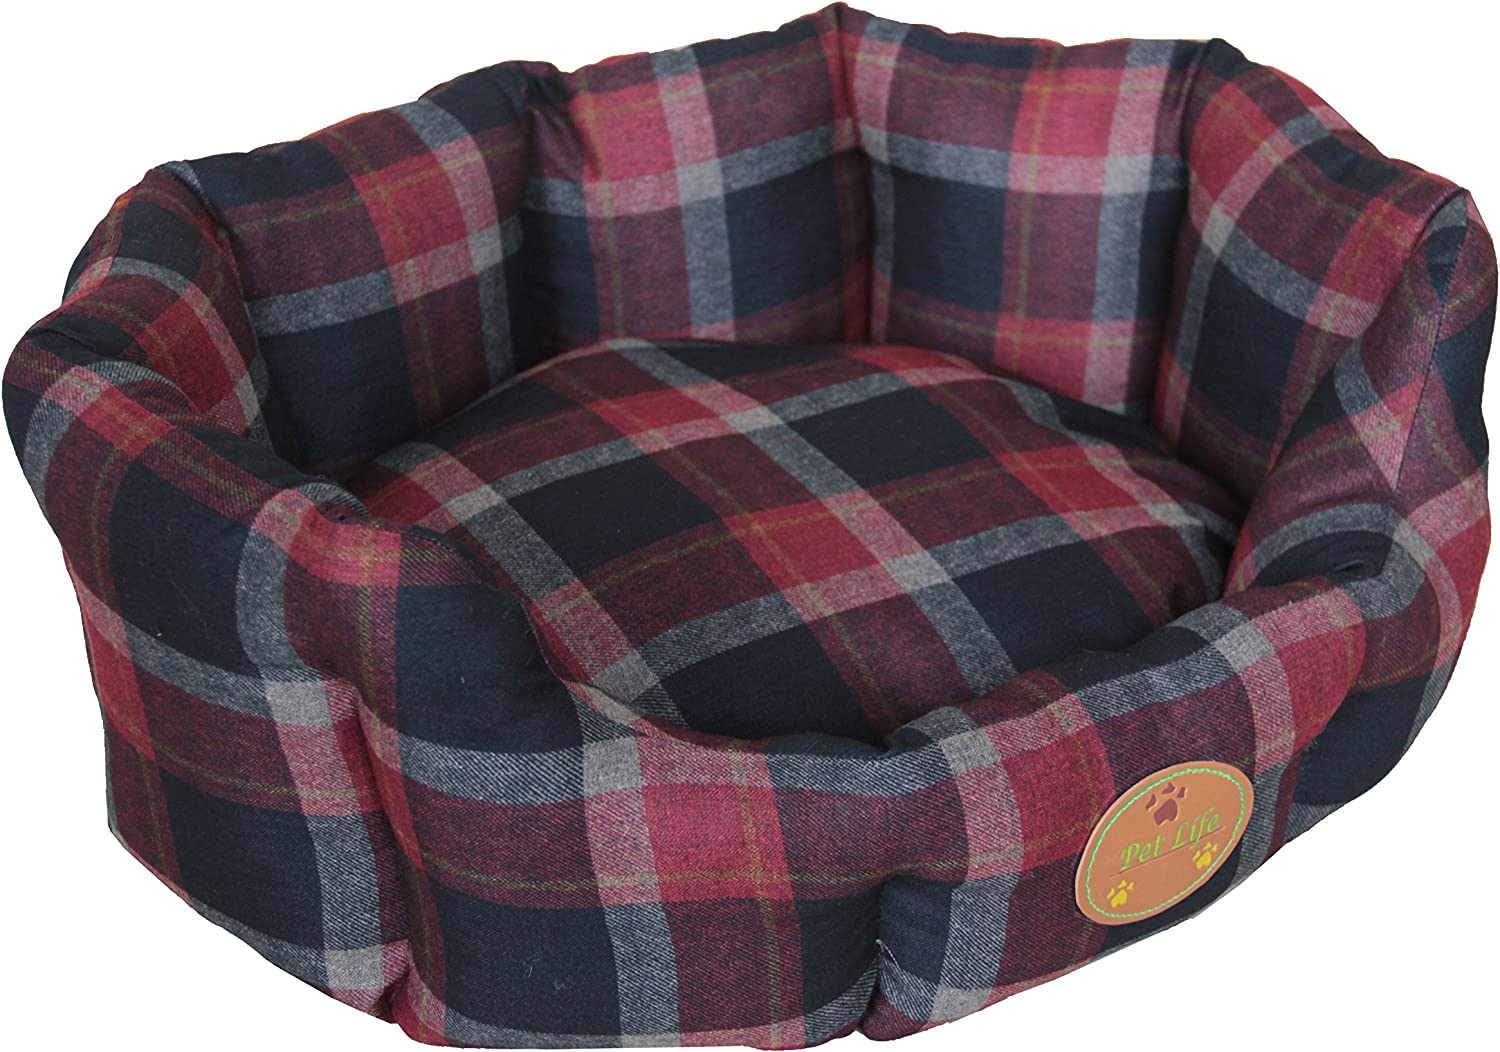 PET LIFE 'WickAway' WickProof NanoSilver and AntiBacterial Water Resistant Rounded Circular Pet Dog Bed Lounge, XSmall, Red, bluee Plaid